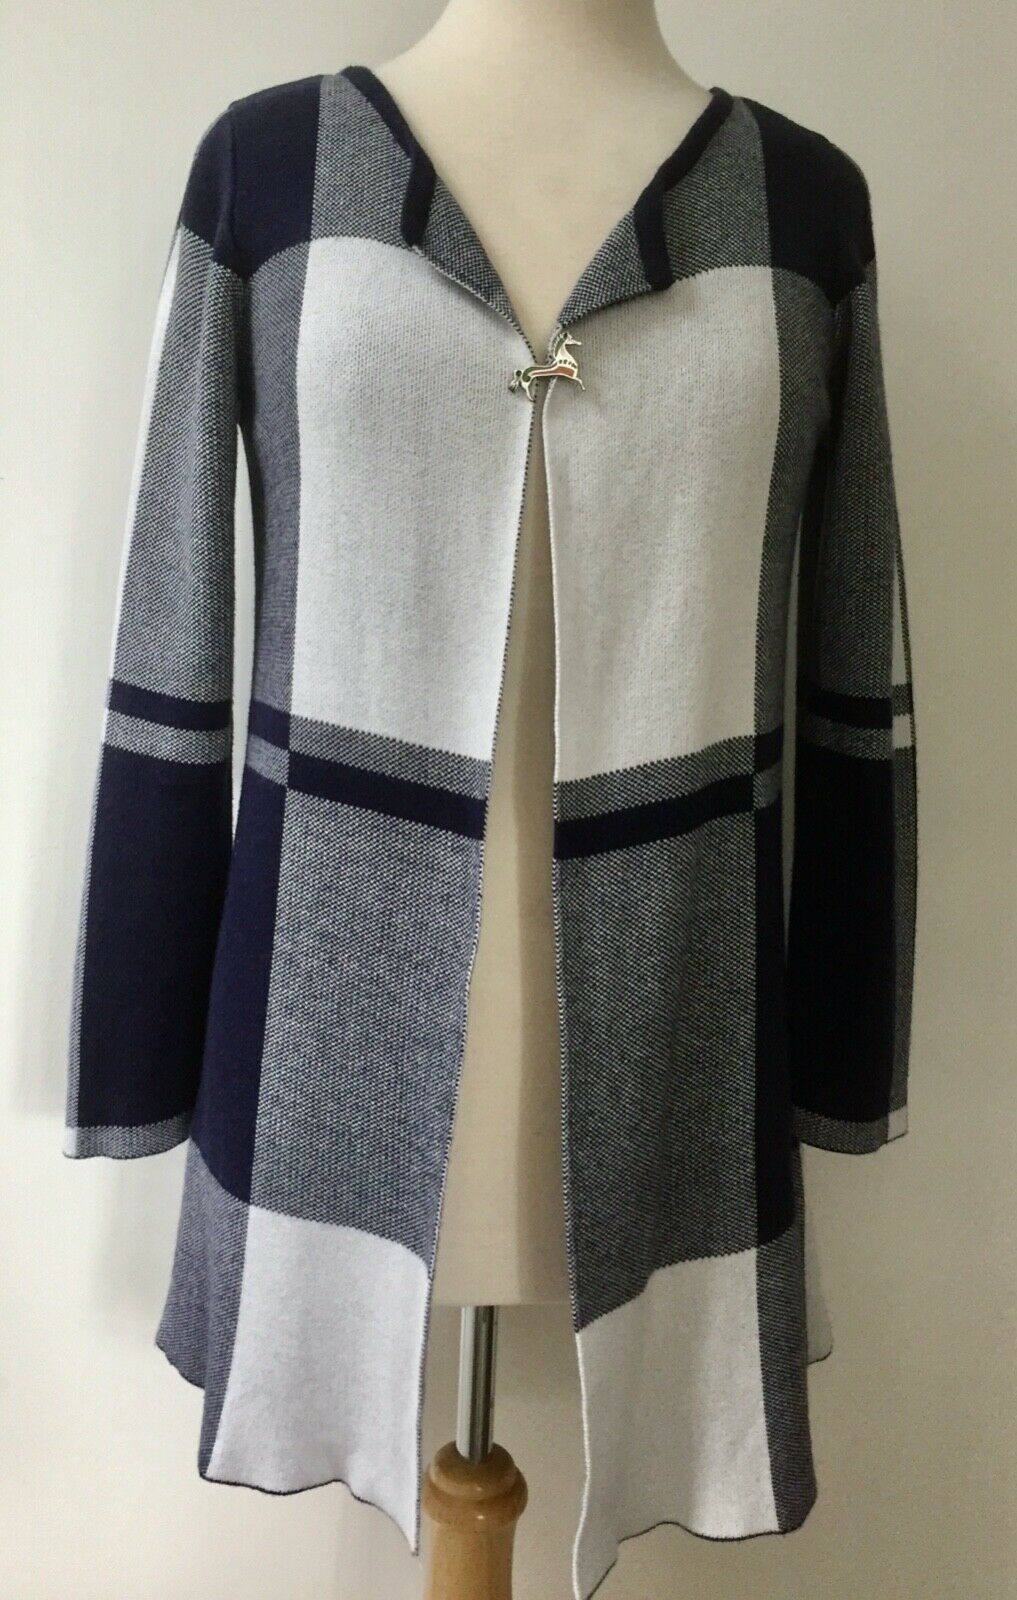 Ladies Size 10 knitted Coat By British Design, Bellfield. Brooch not included